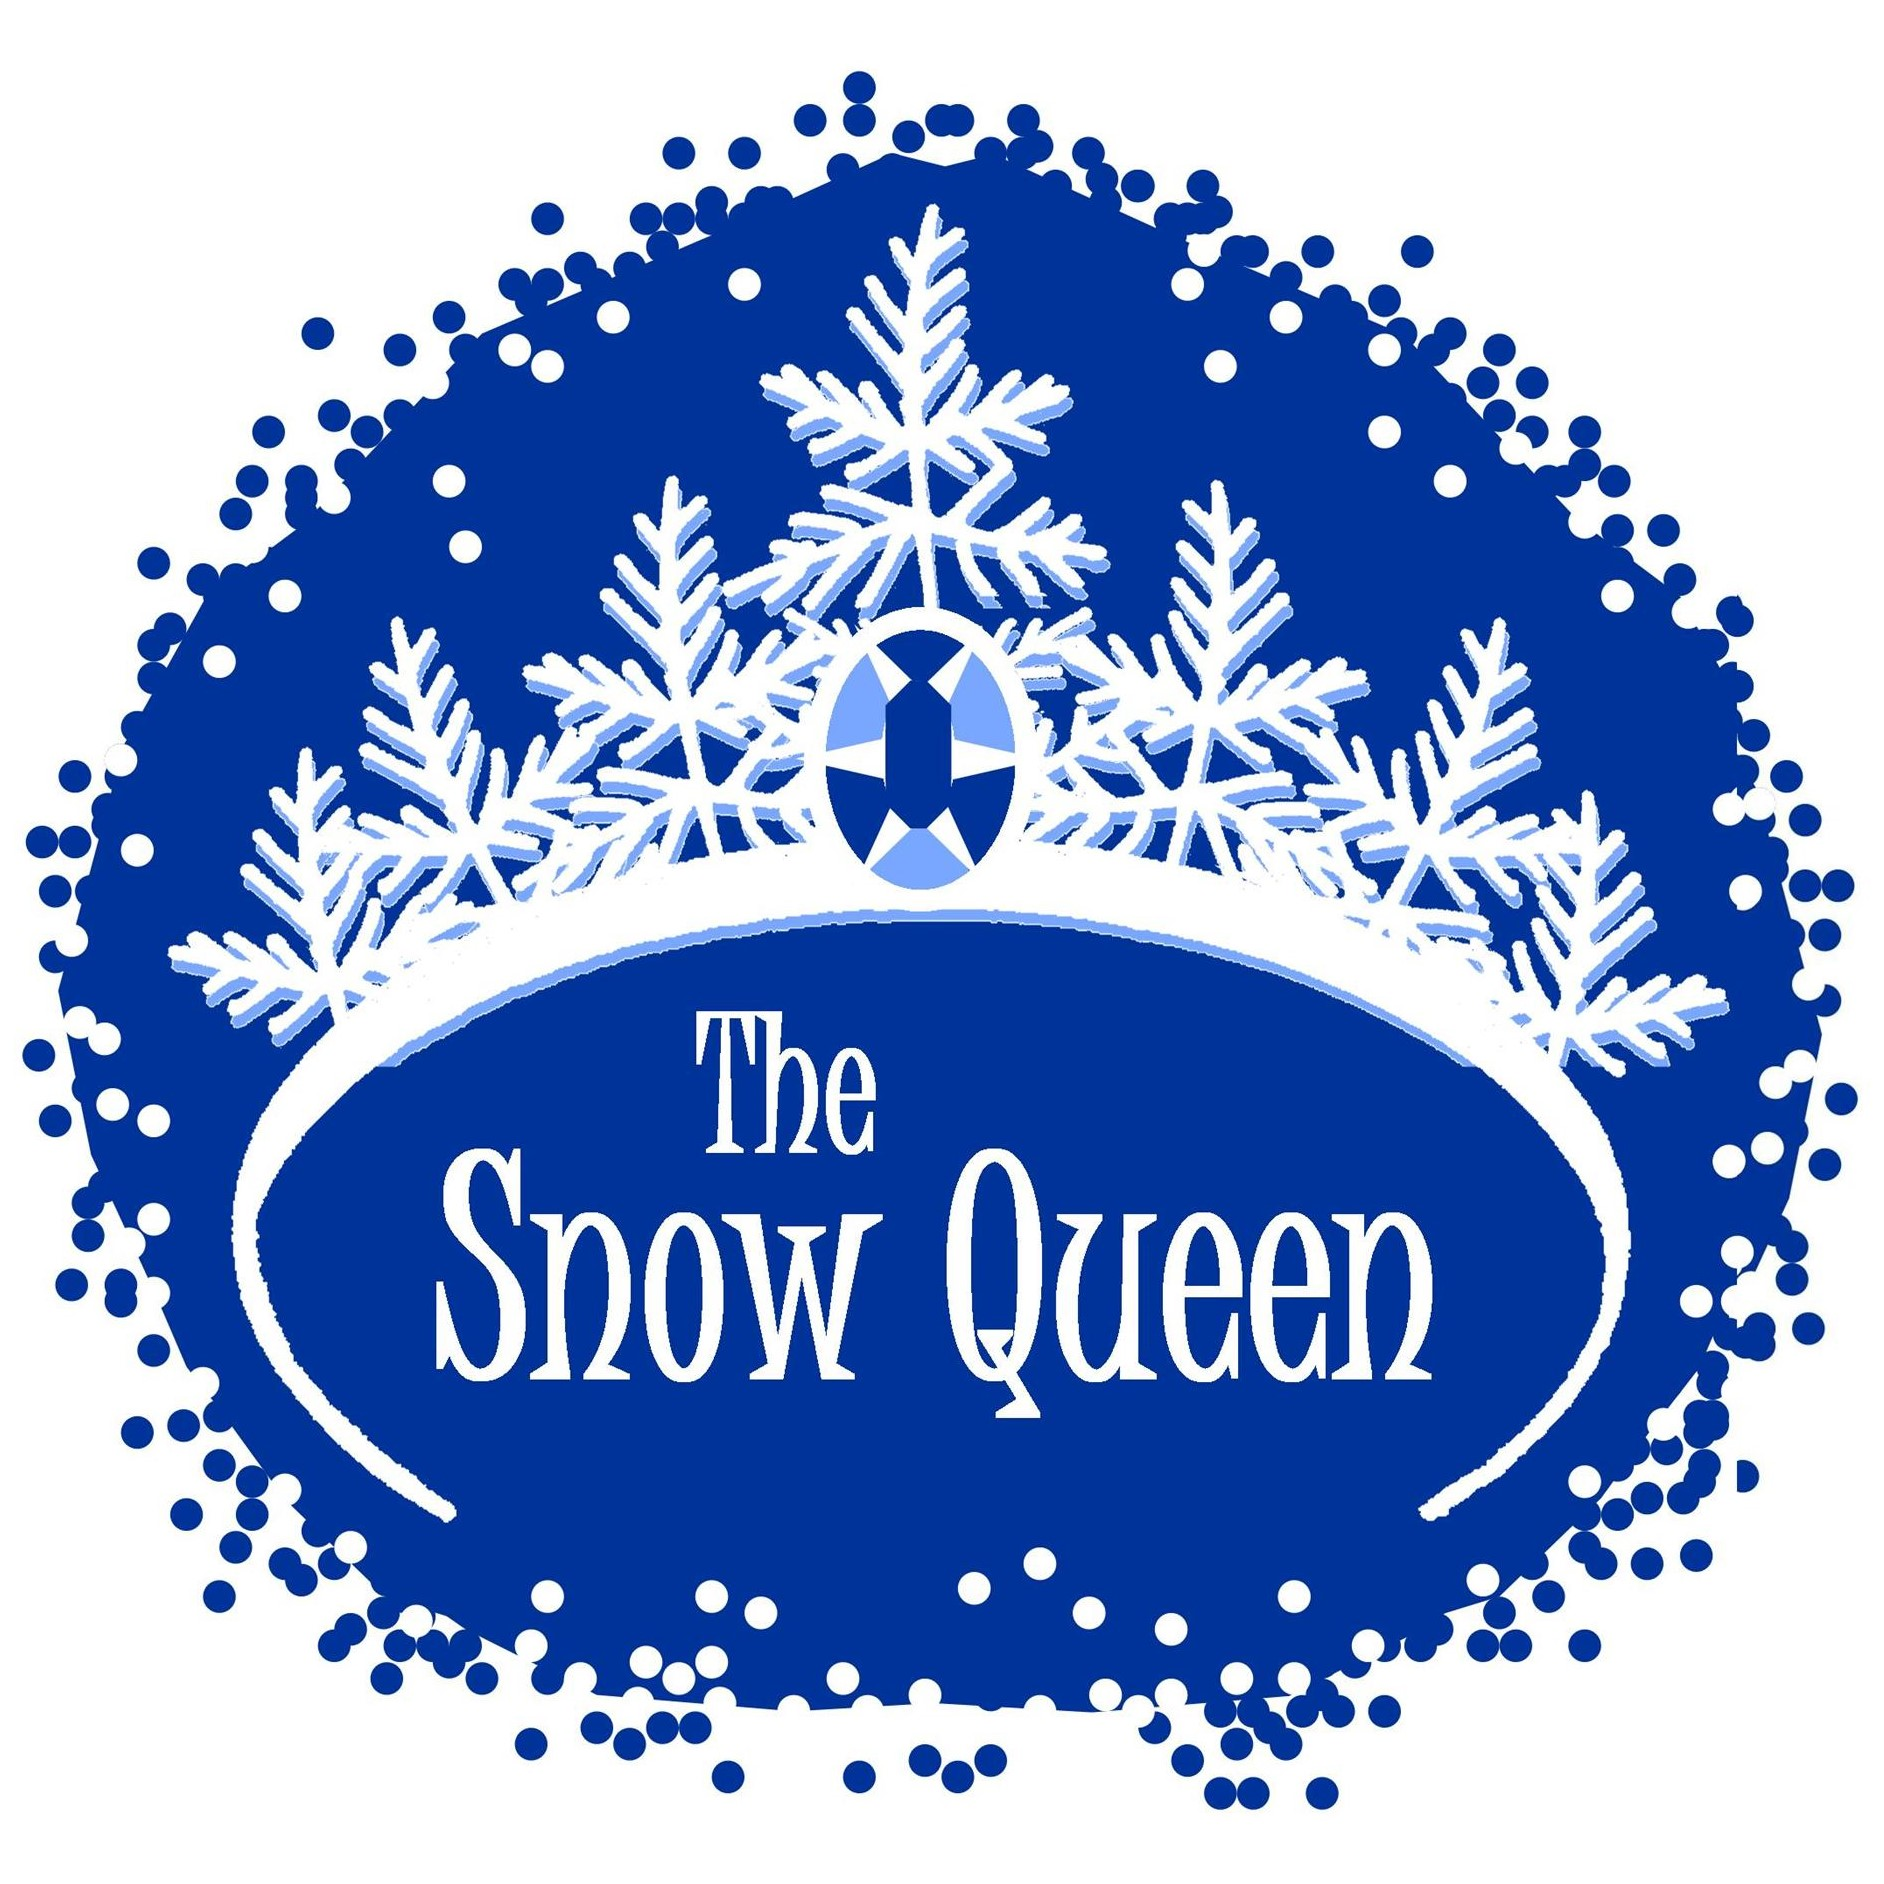 the_snow_queen_logo.jpg